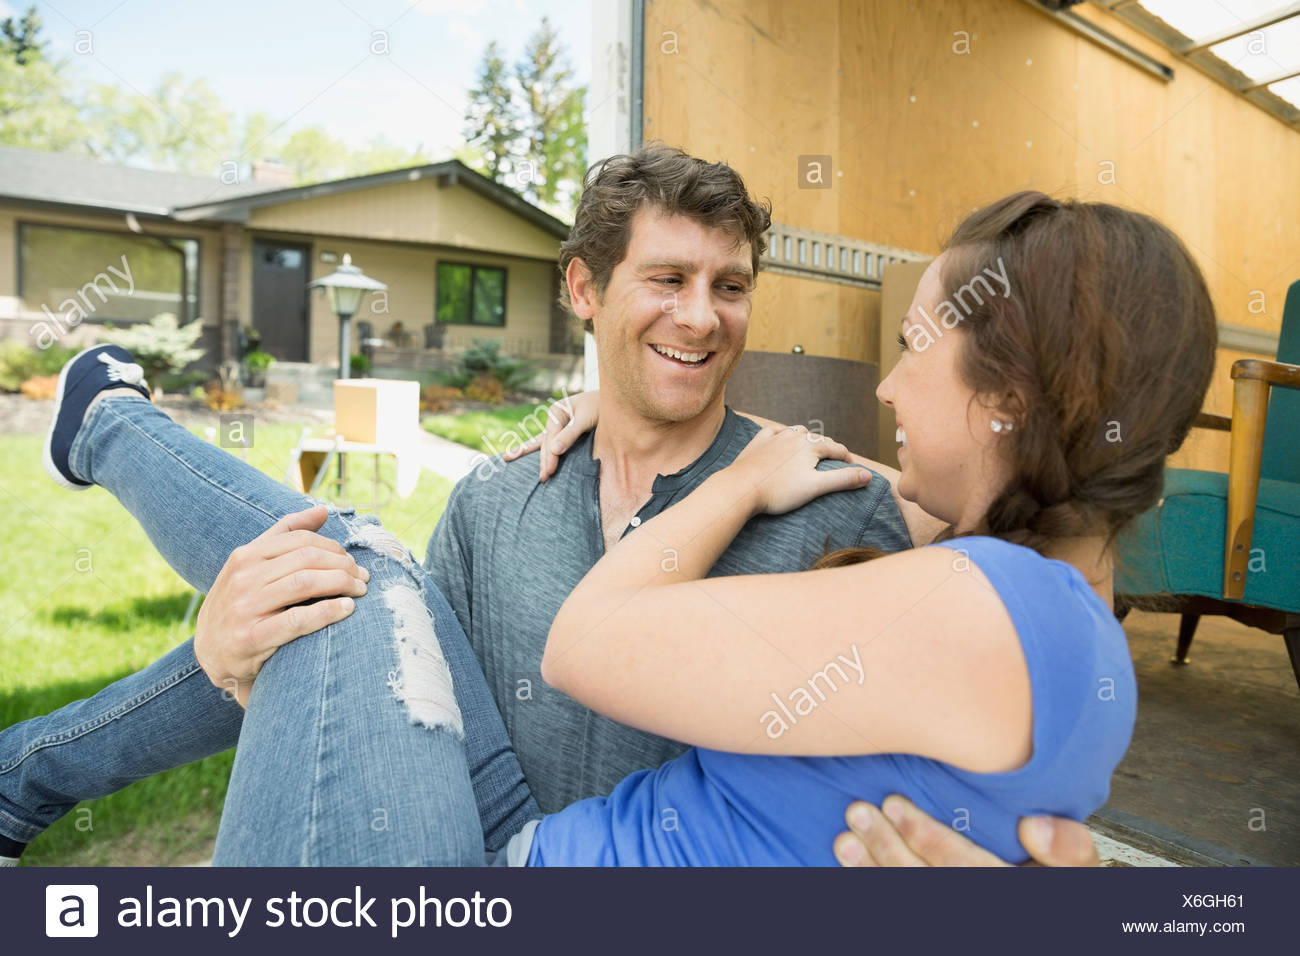 Man carrying woman outside moving van - Stock Image